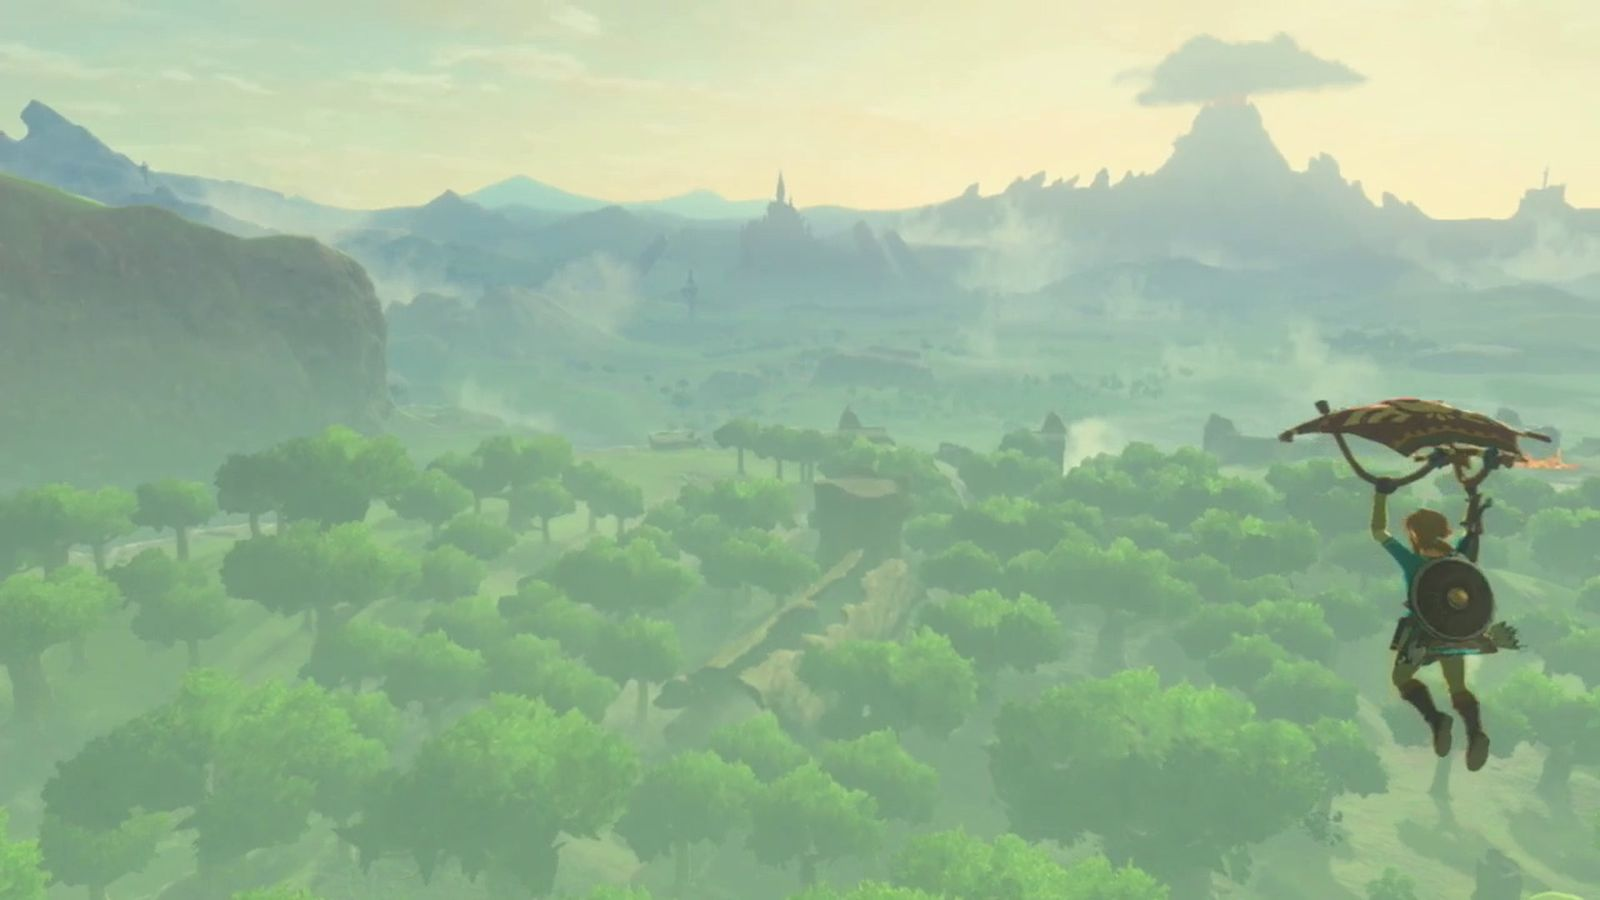 The Legend of Zelda Breath of the Wild Download For Free